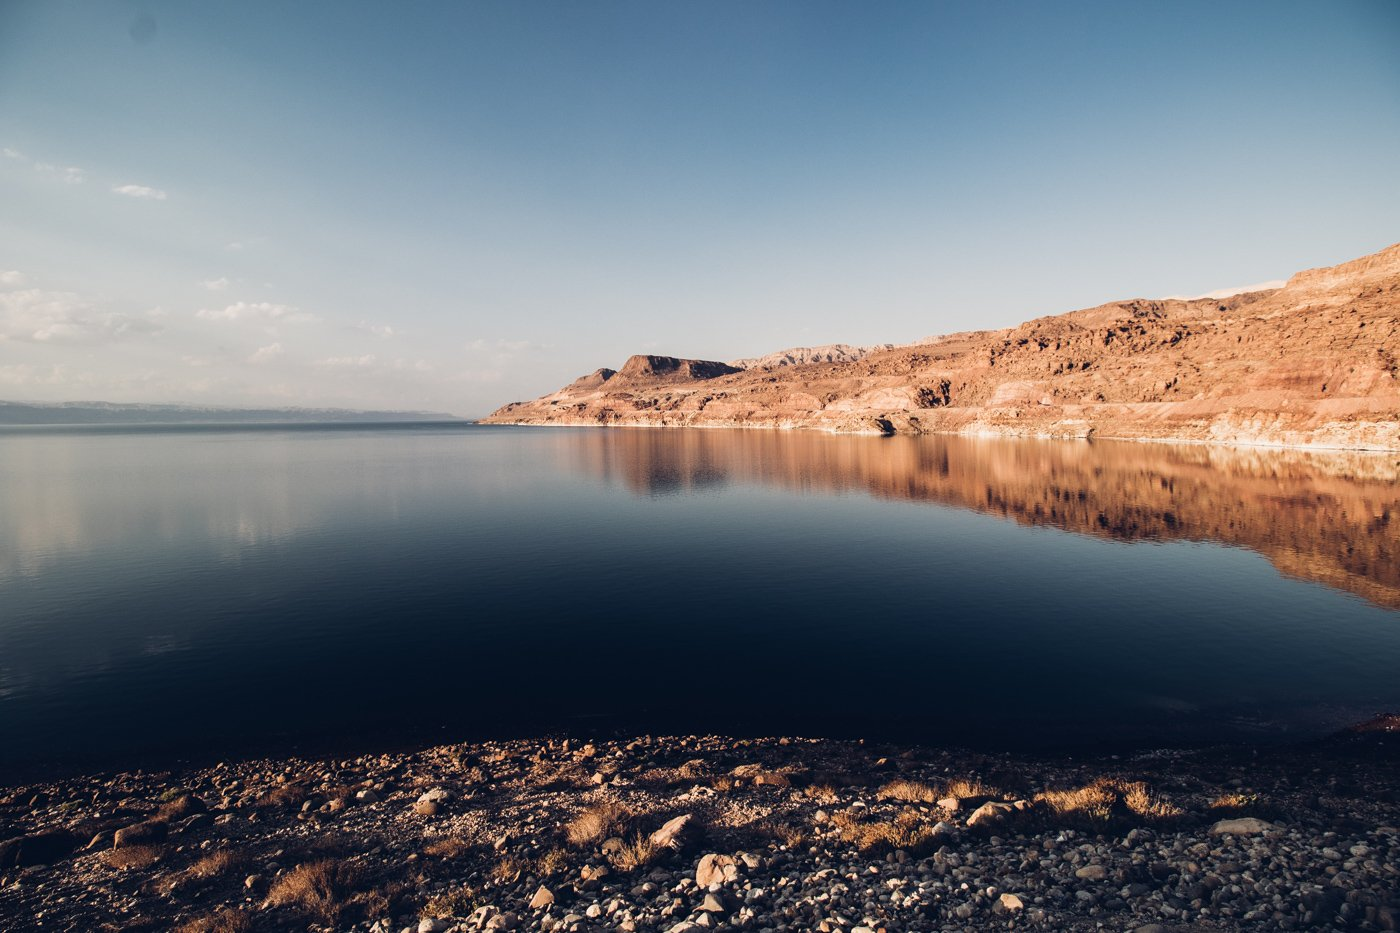 Dead Sea in Jordan as shot with Canon 200D